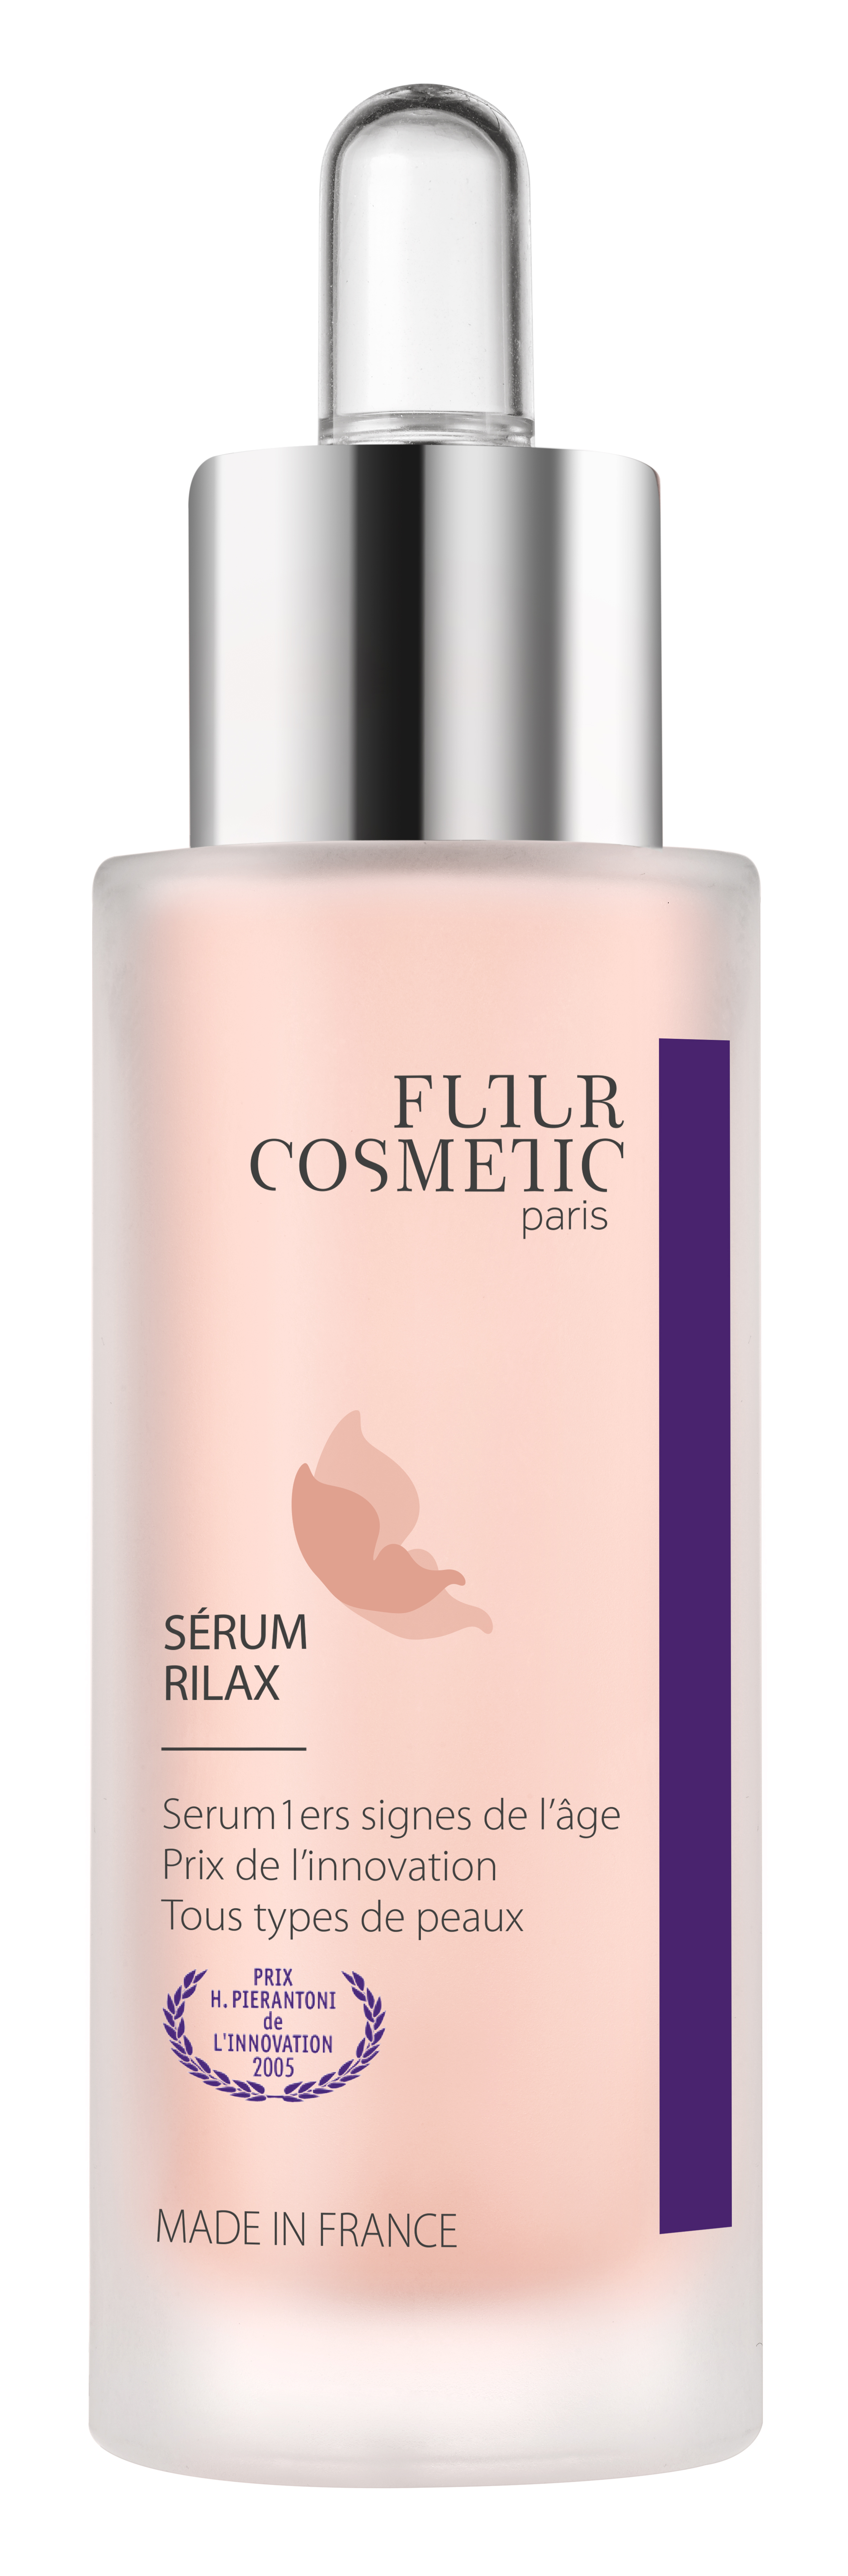 serum-relax30mlbottle-corrig-cut.png